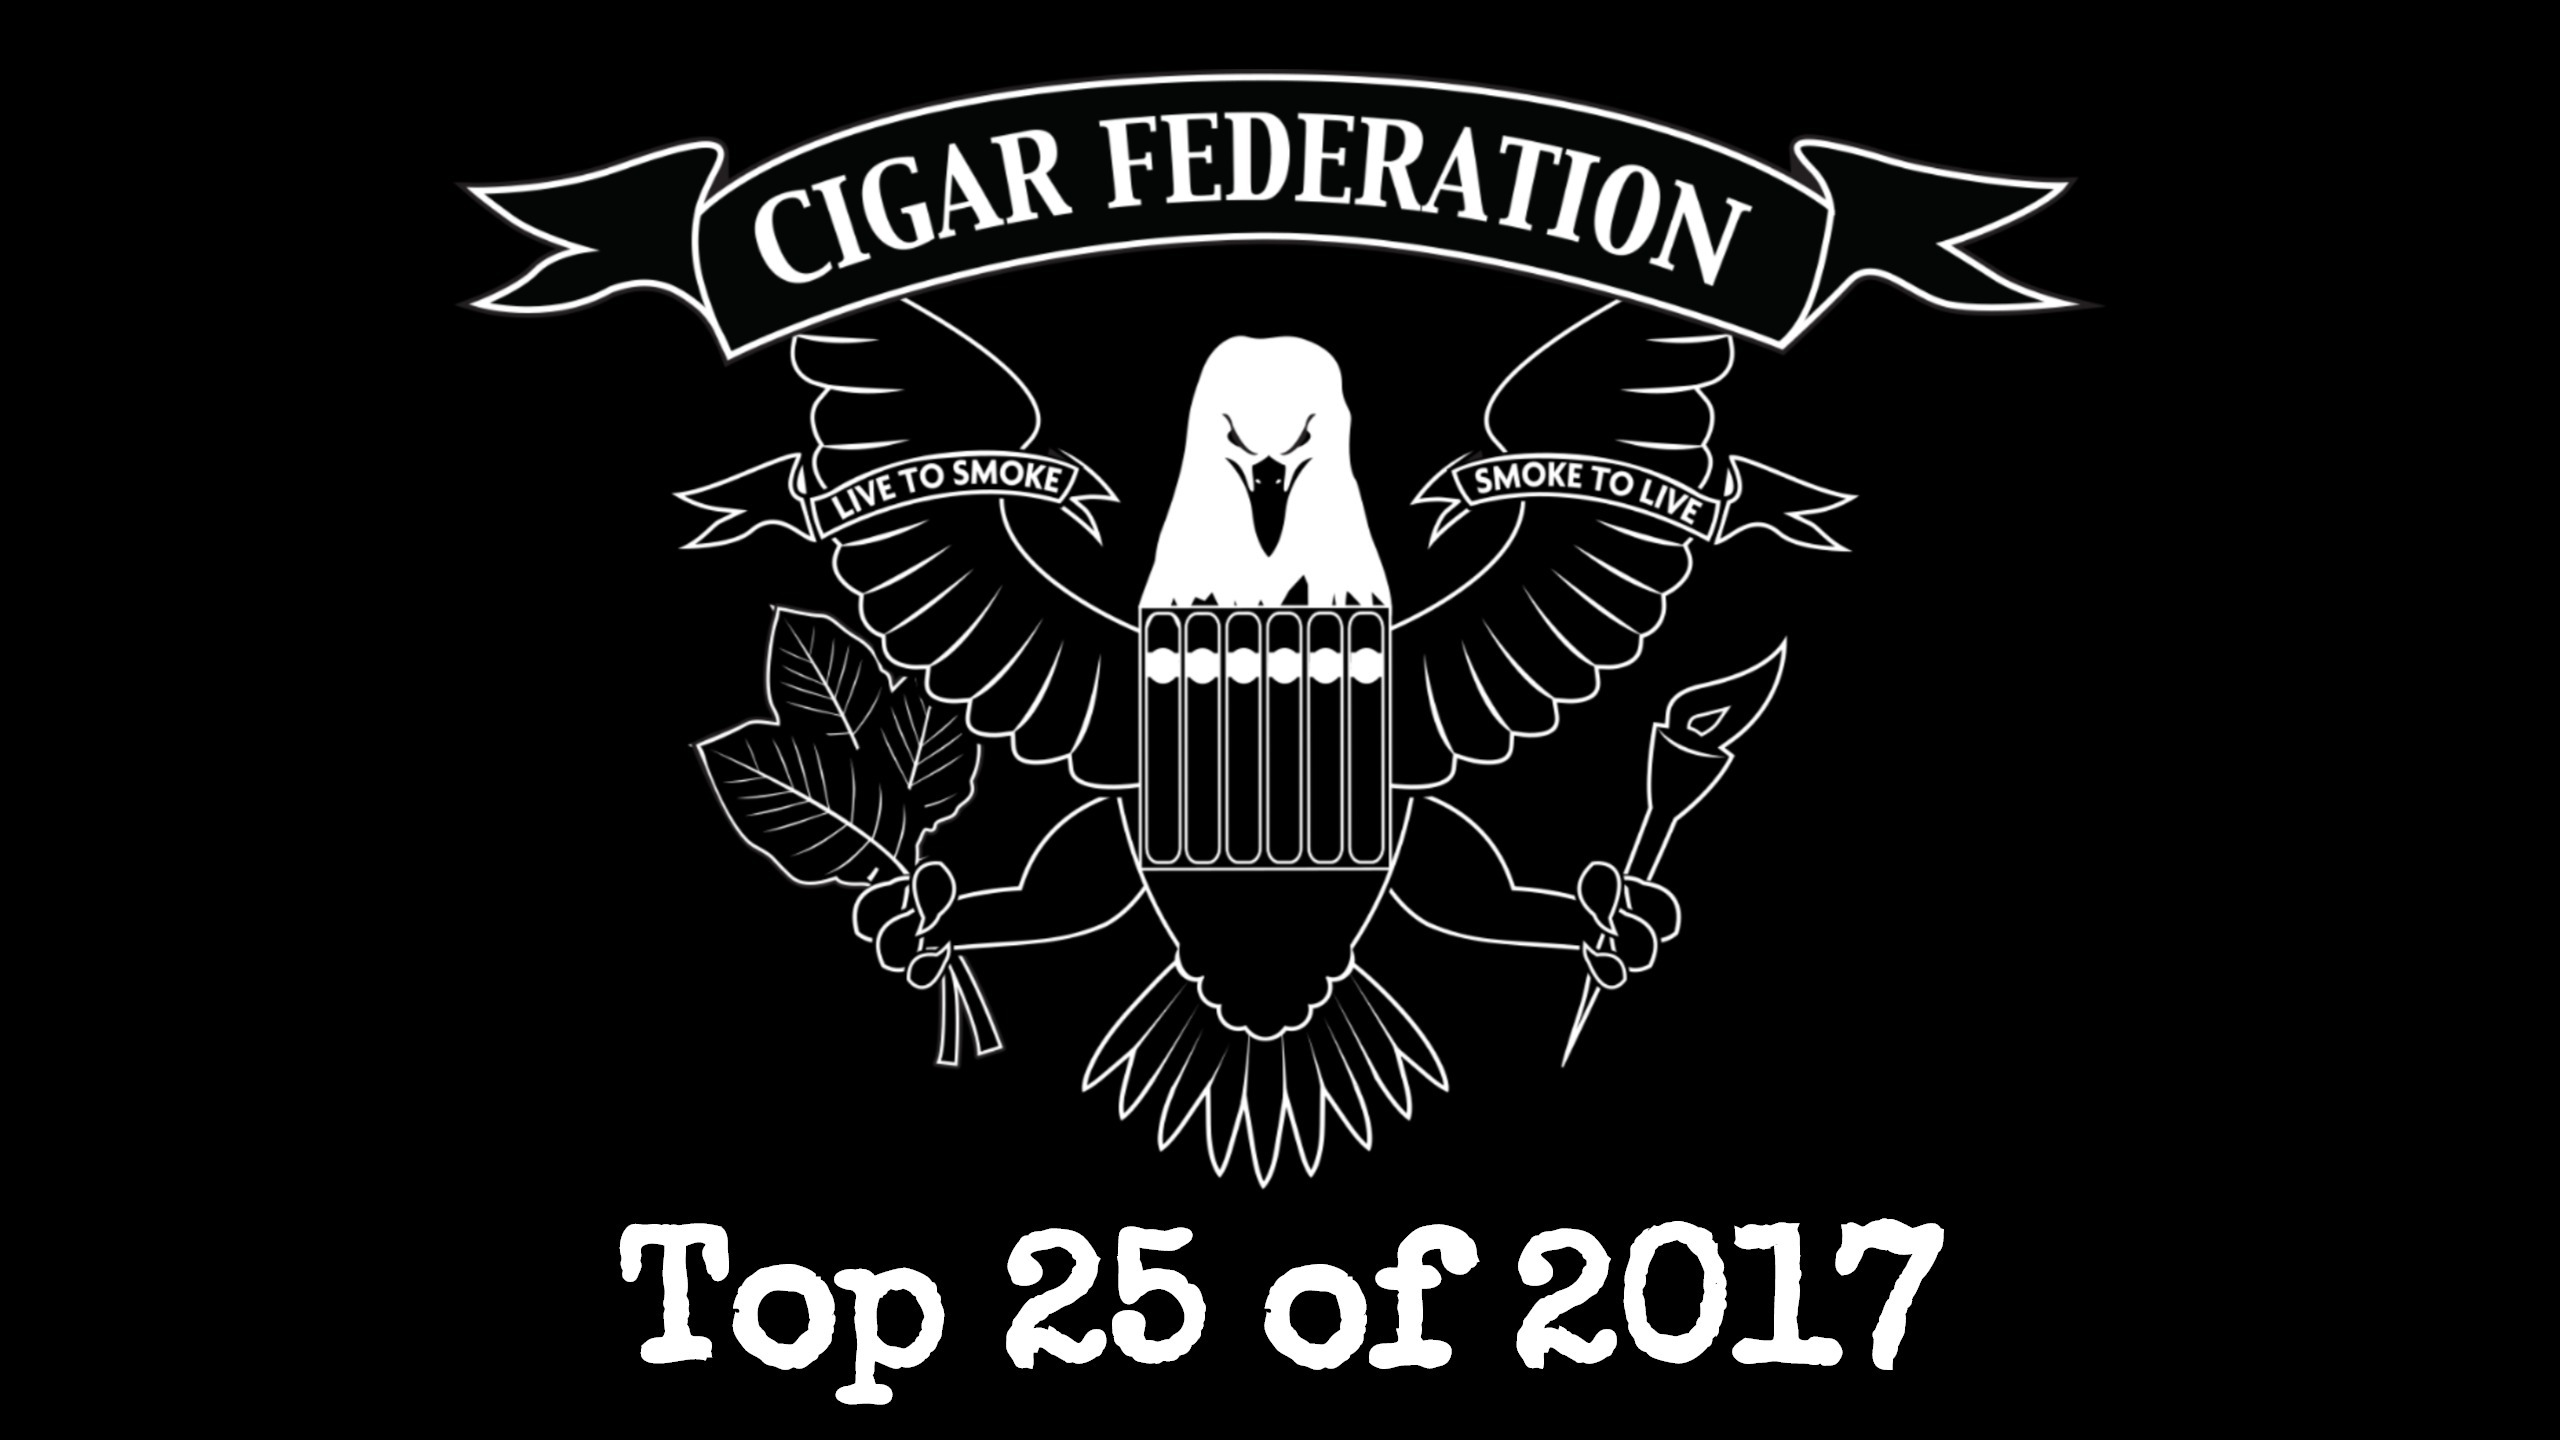 Cigar Chat - Cigar Federation Top 25 of 2017